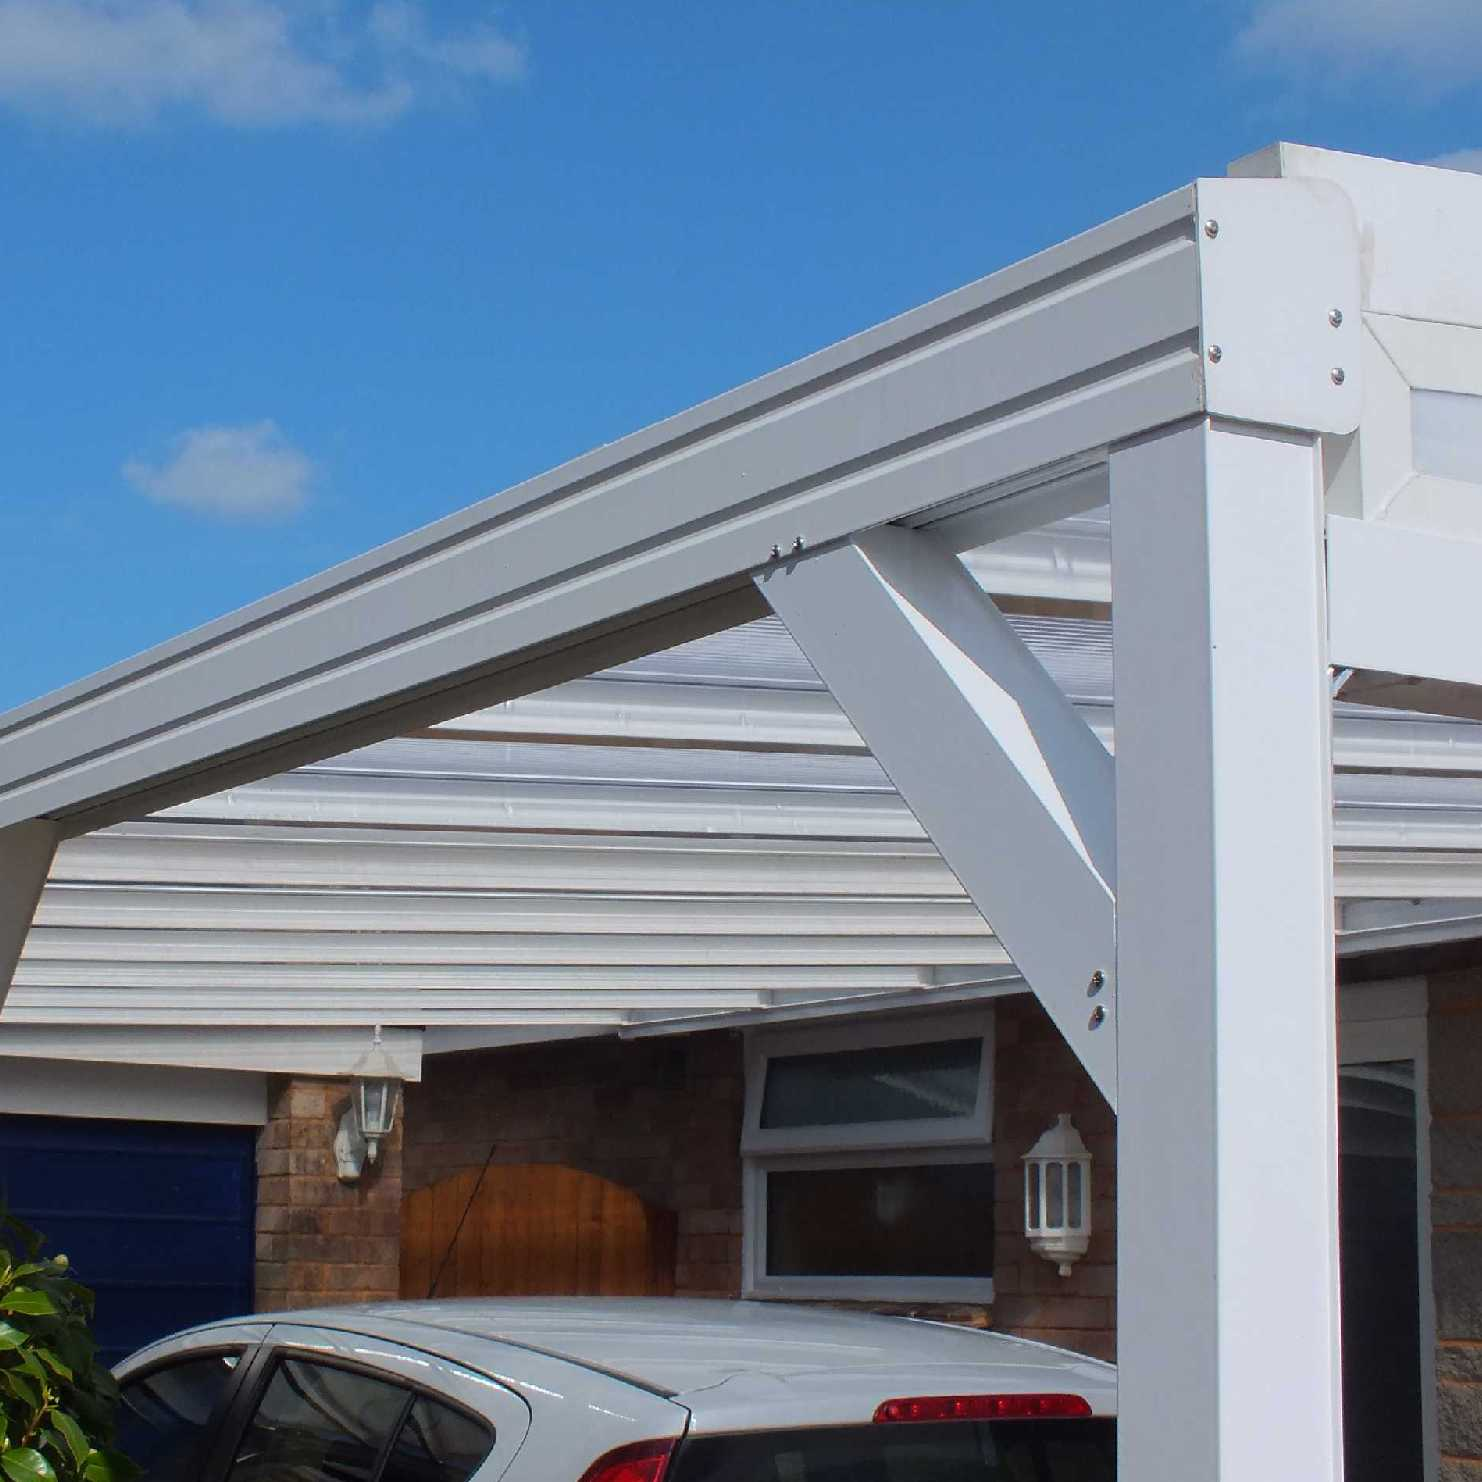 Great deals on Omega Smart Lean-To Canopy with 16mm Polycarbonate Glazing - 8.4m (W) x 3.5m (P), (4) Supporting Posts